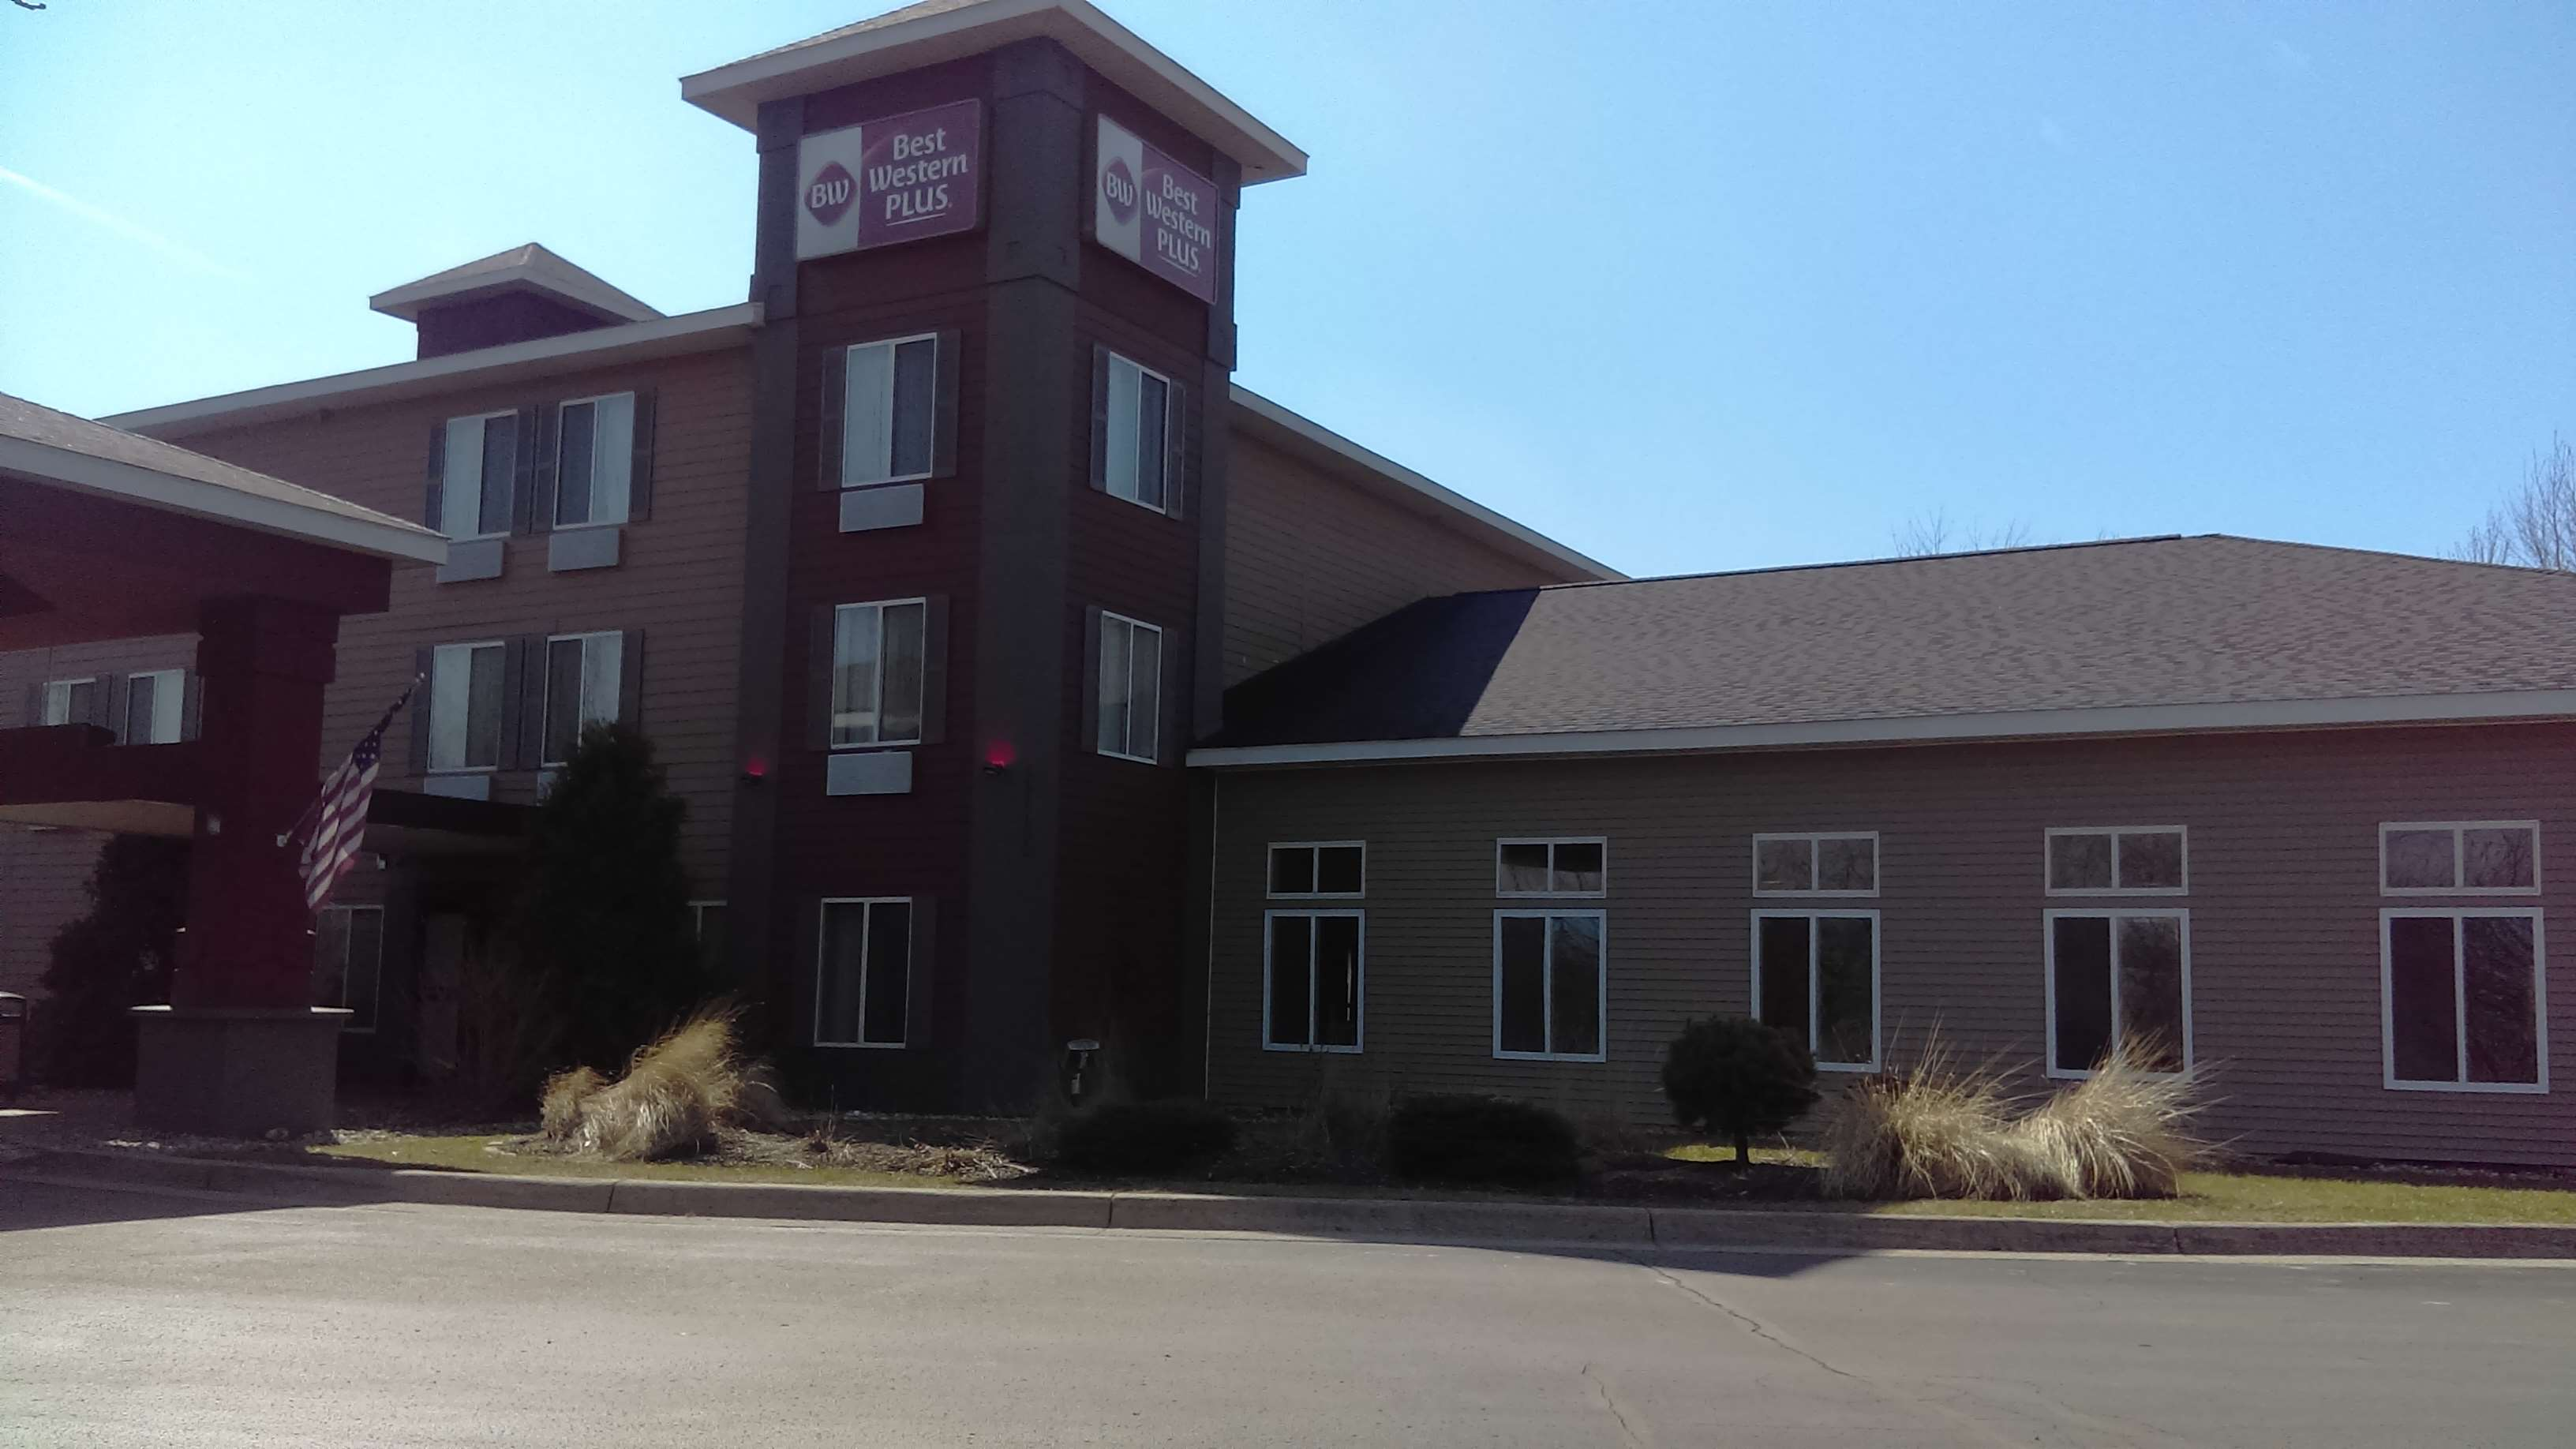 Best Western Plus Coldwater Hotel image 2